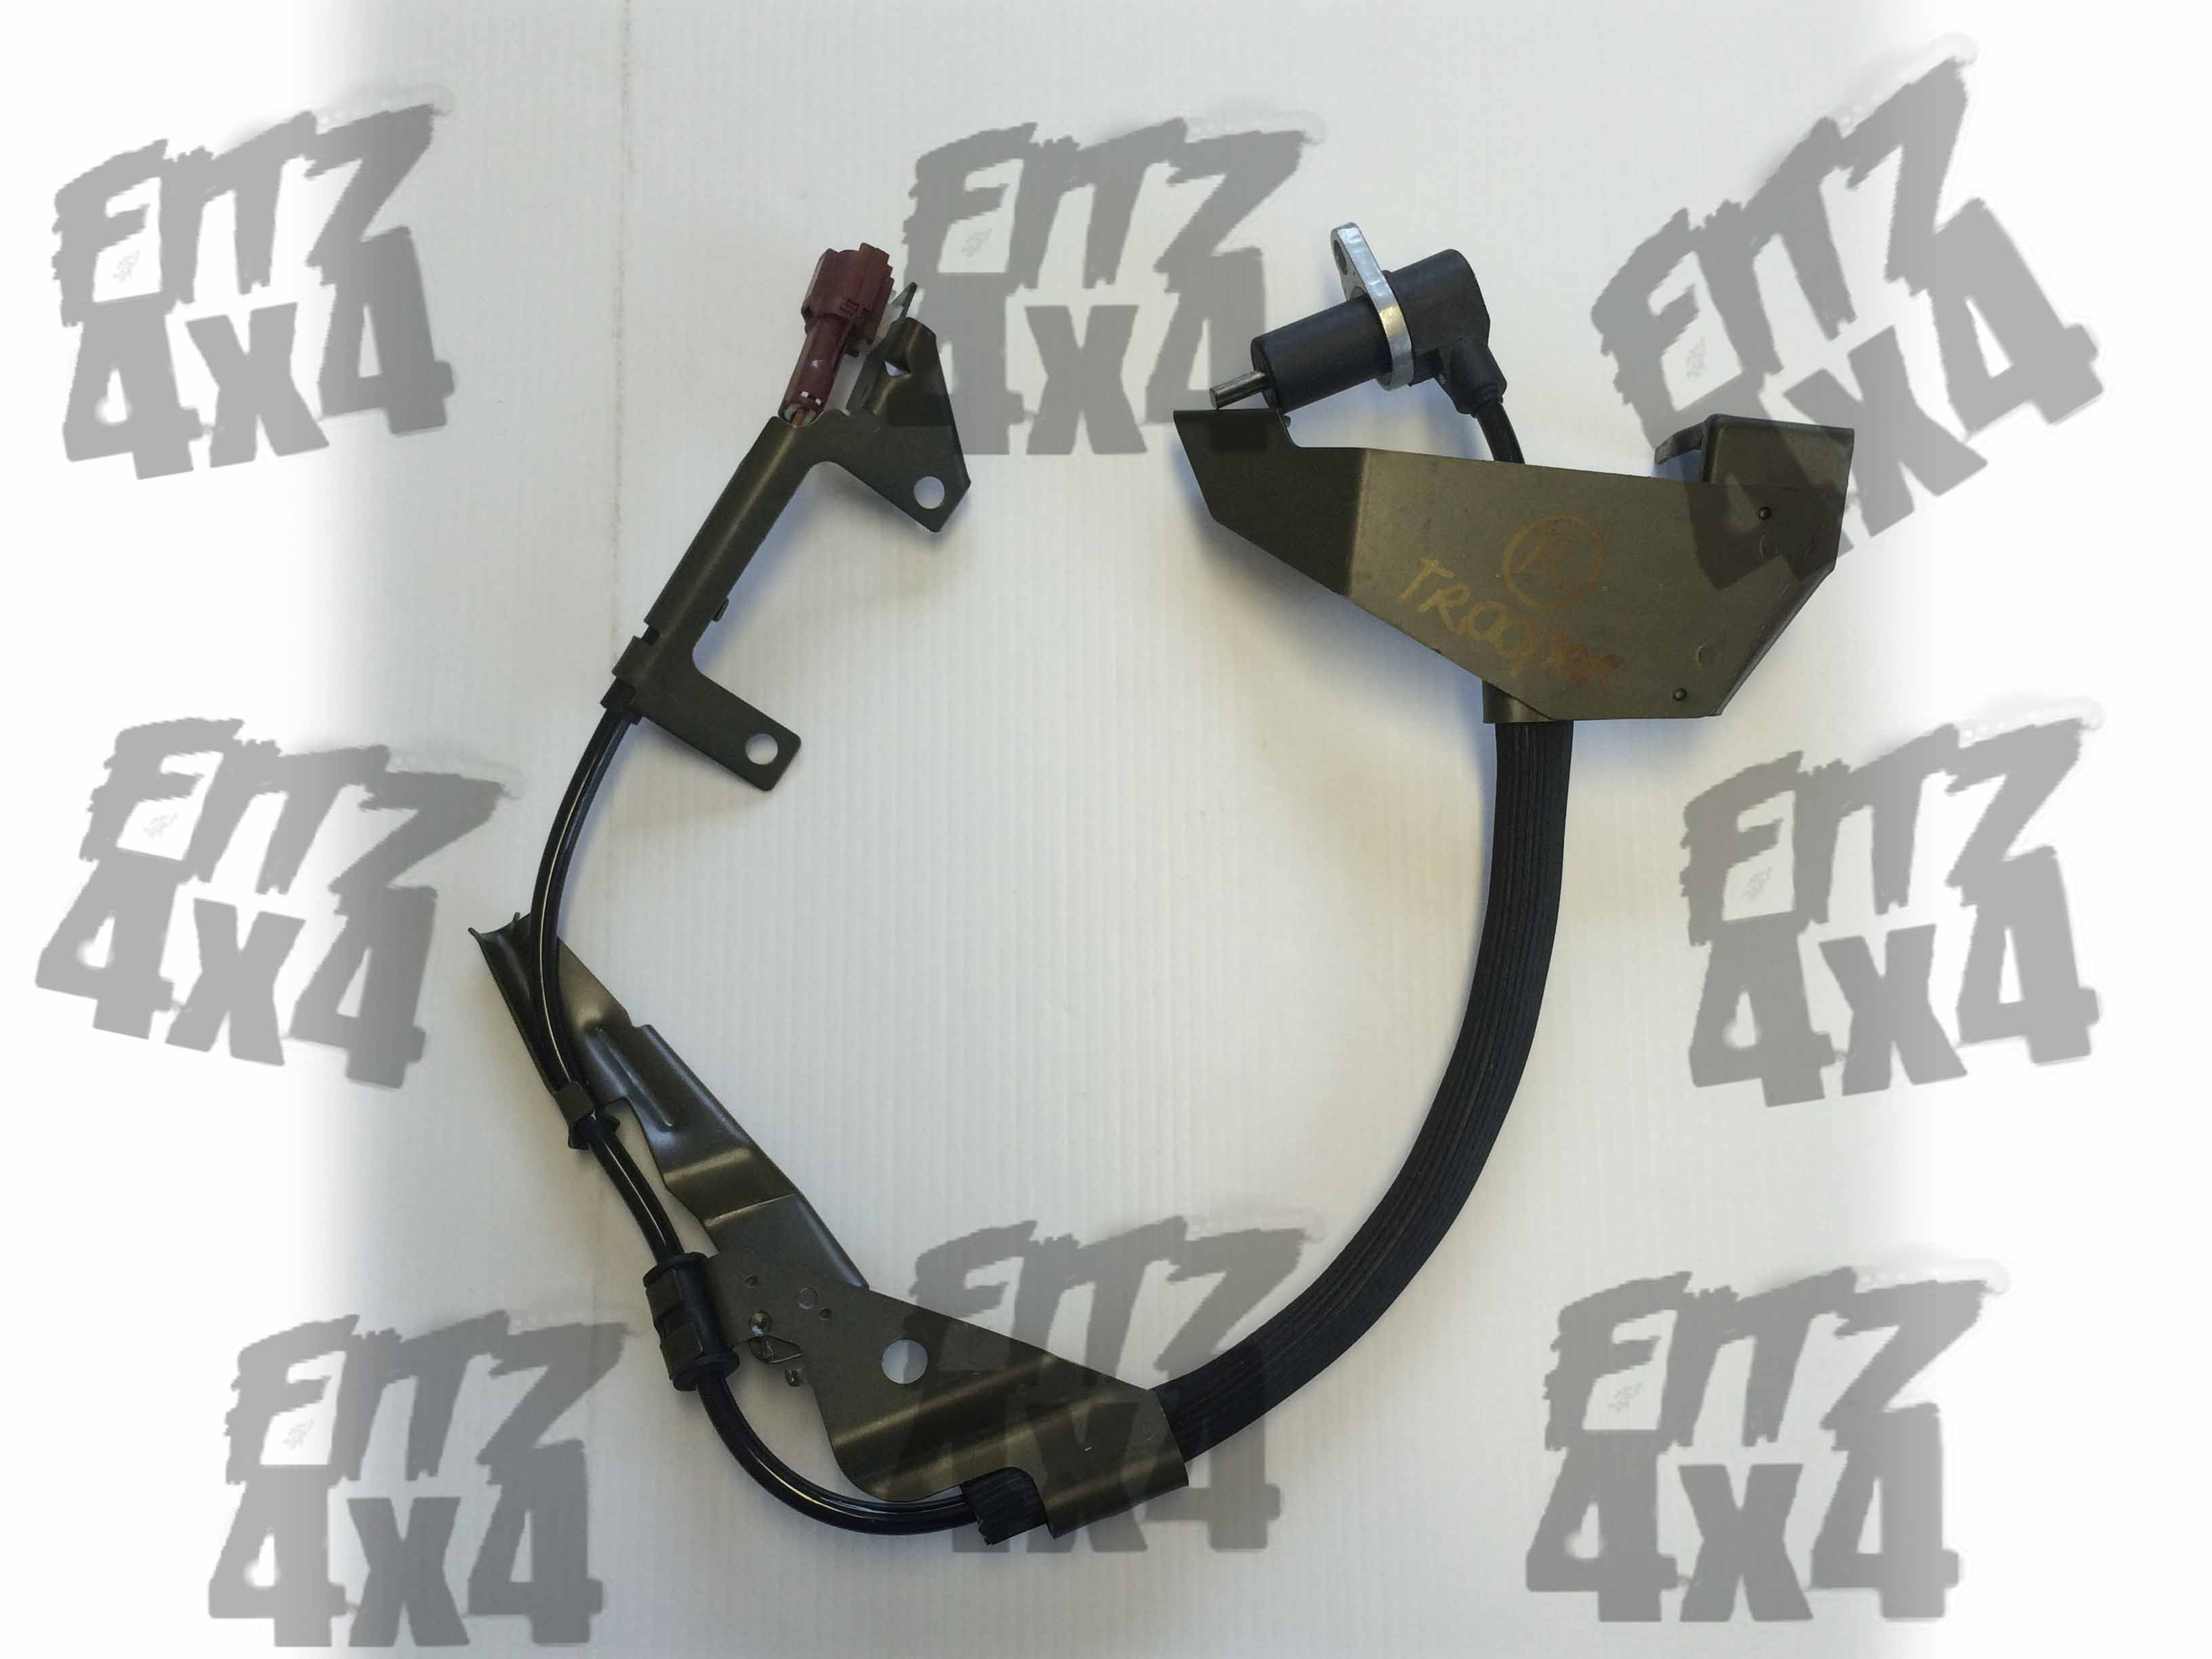 Isuzu Trooper Front Right ABS Sensor